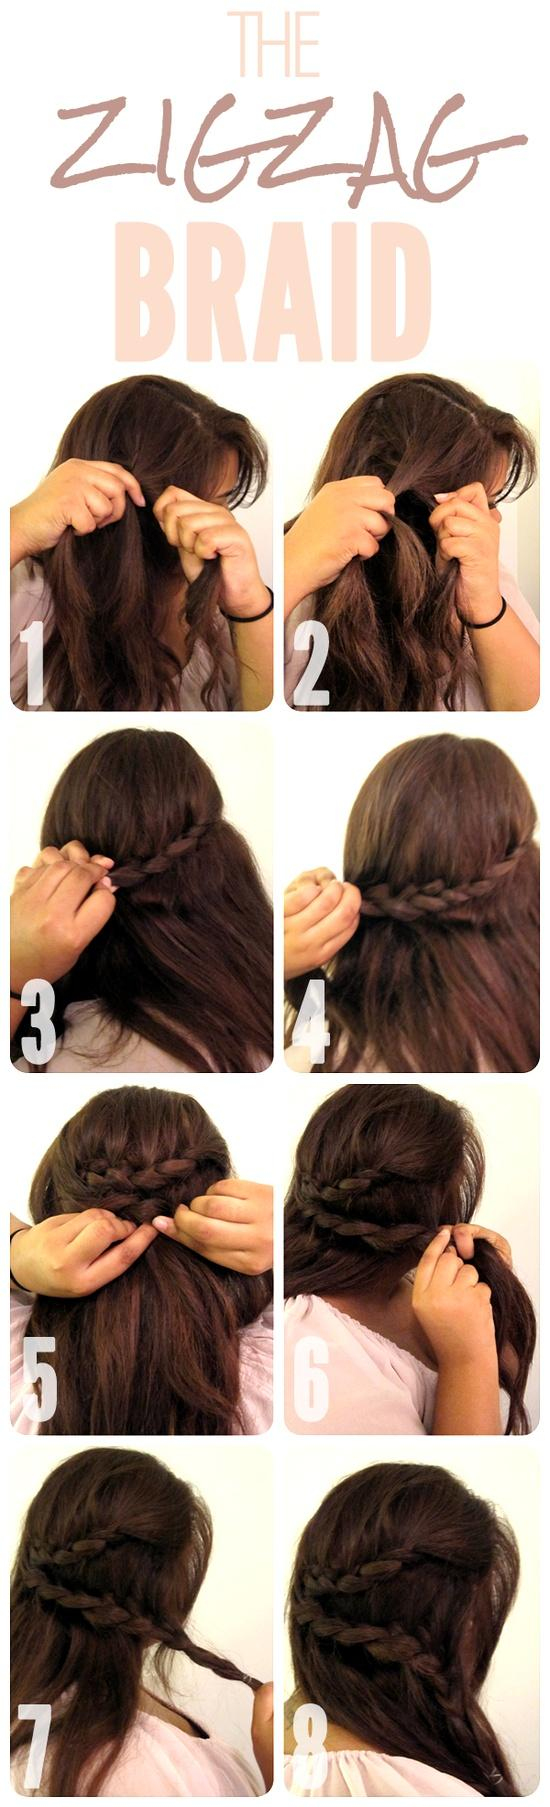 11 Amazing and Easy Hairstyles Tutorials for Hot Summer Days